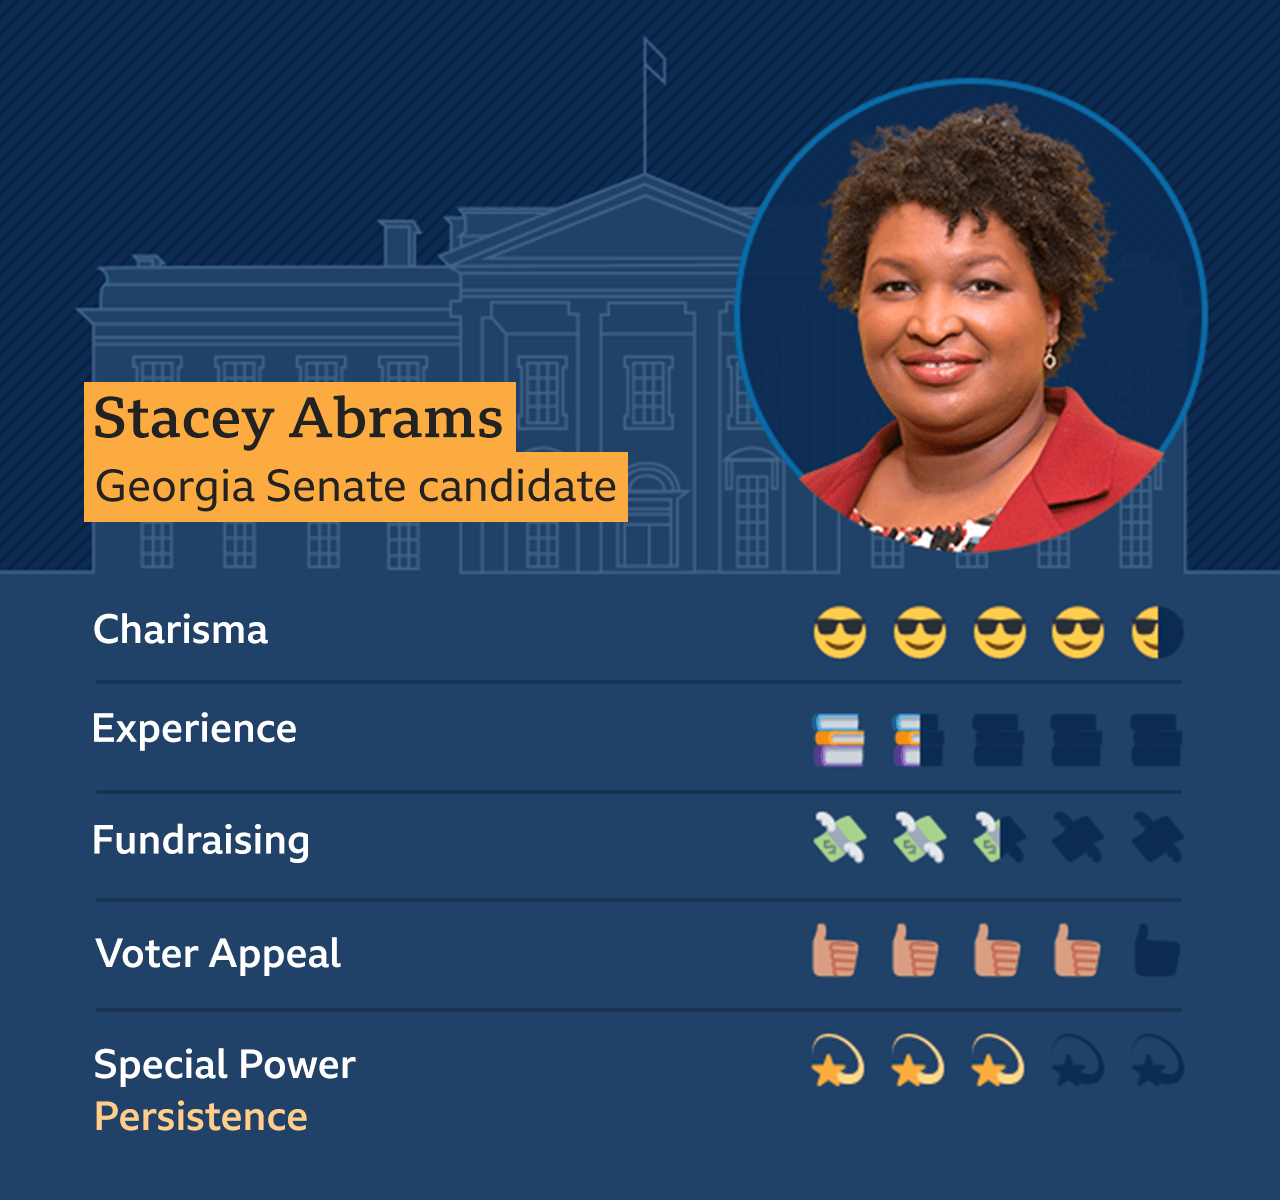 Graphic of Stacey Abrams, Georgia Senate candidate: Charisma - 4.5, Experience - 1.5, Fundraising - 2.5, Voter appeal - 4, Special Power - Persistence - 3.5